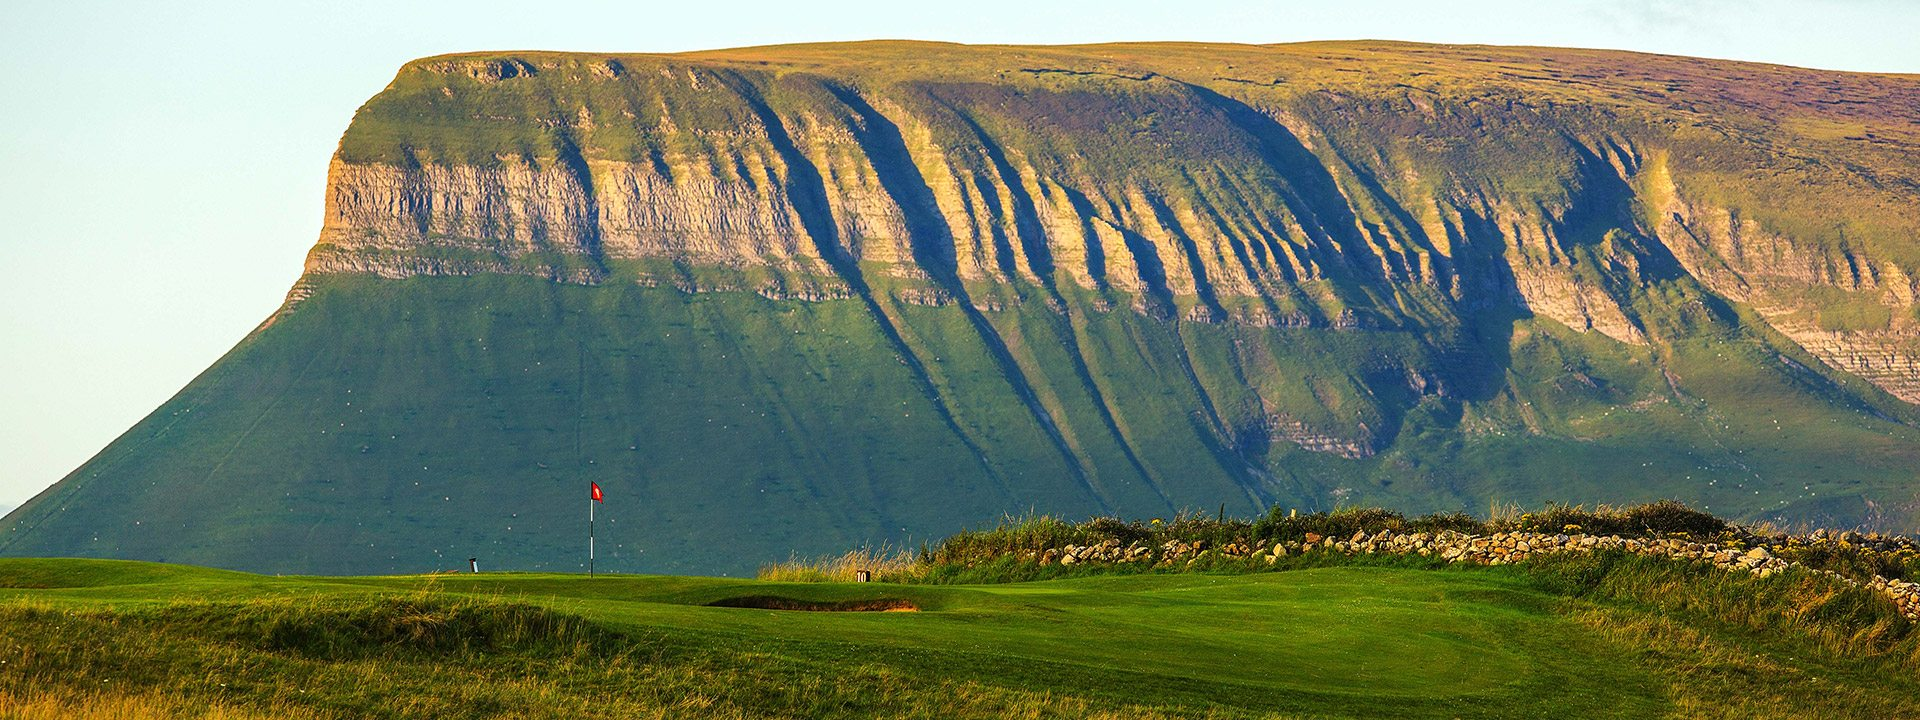 The County Sligo Golf Club (Rosses Point)